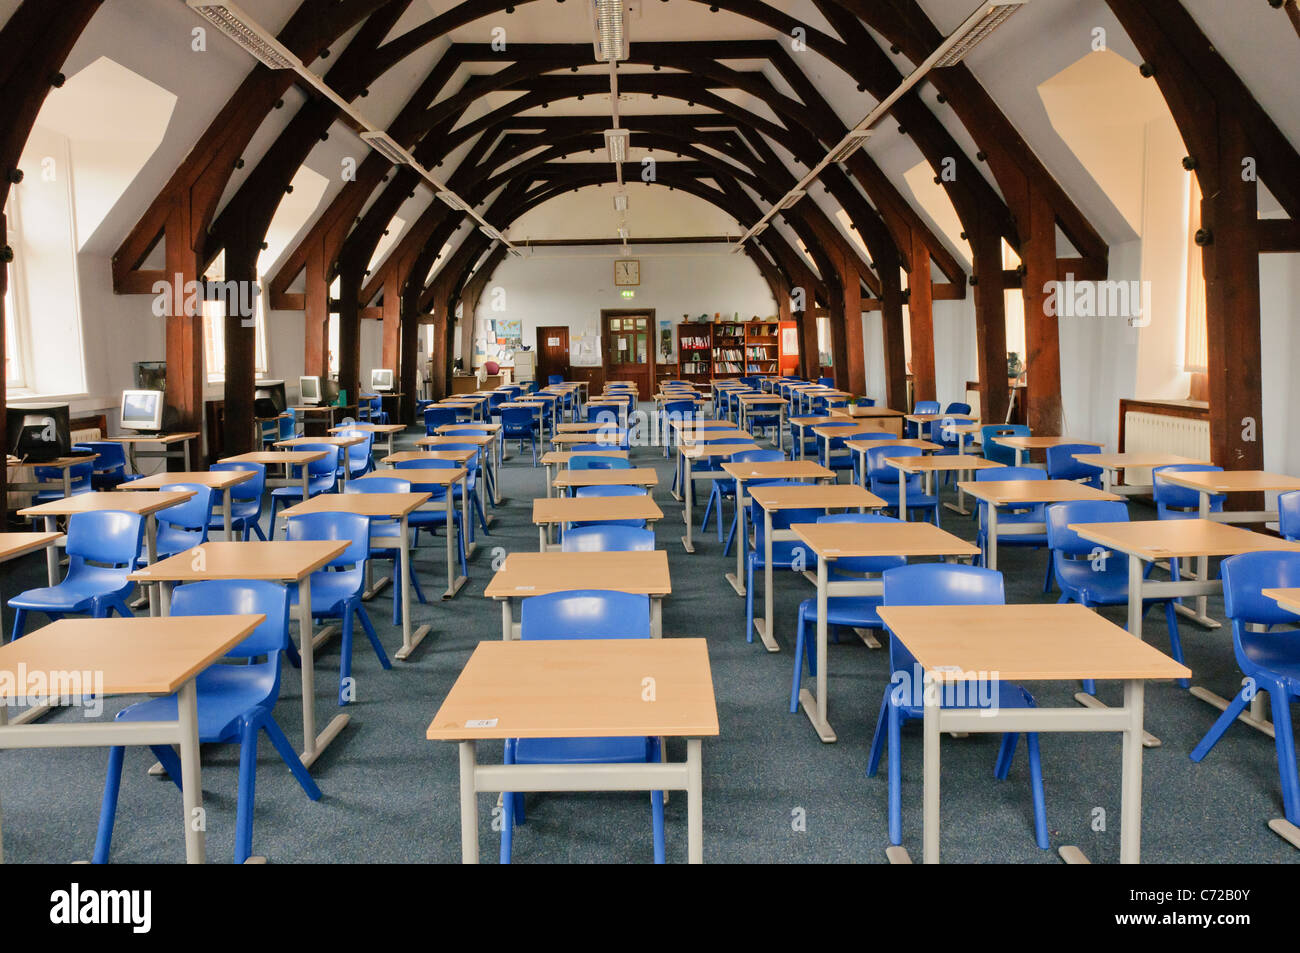 Large School Classroom With Desks And Chairs In Campbell College